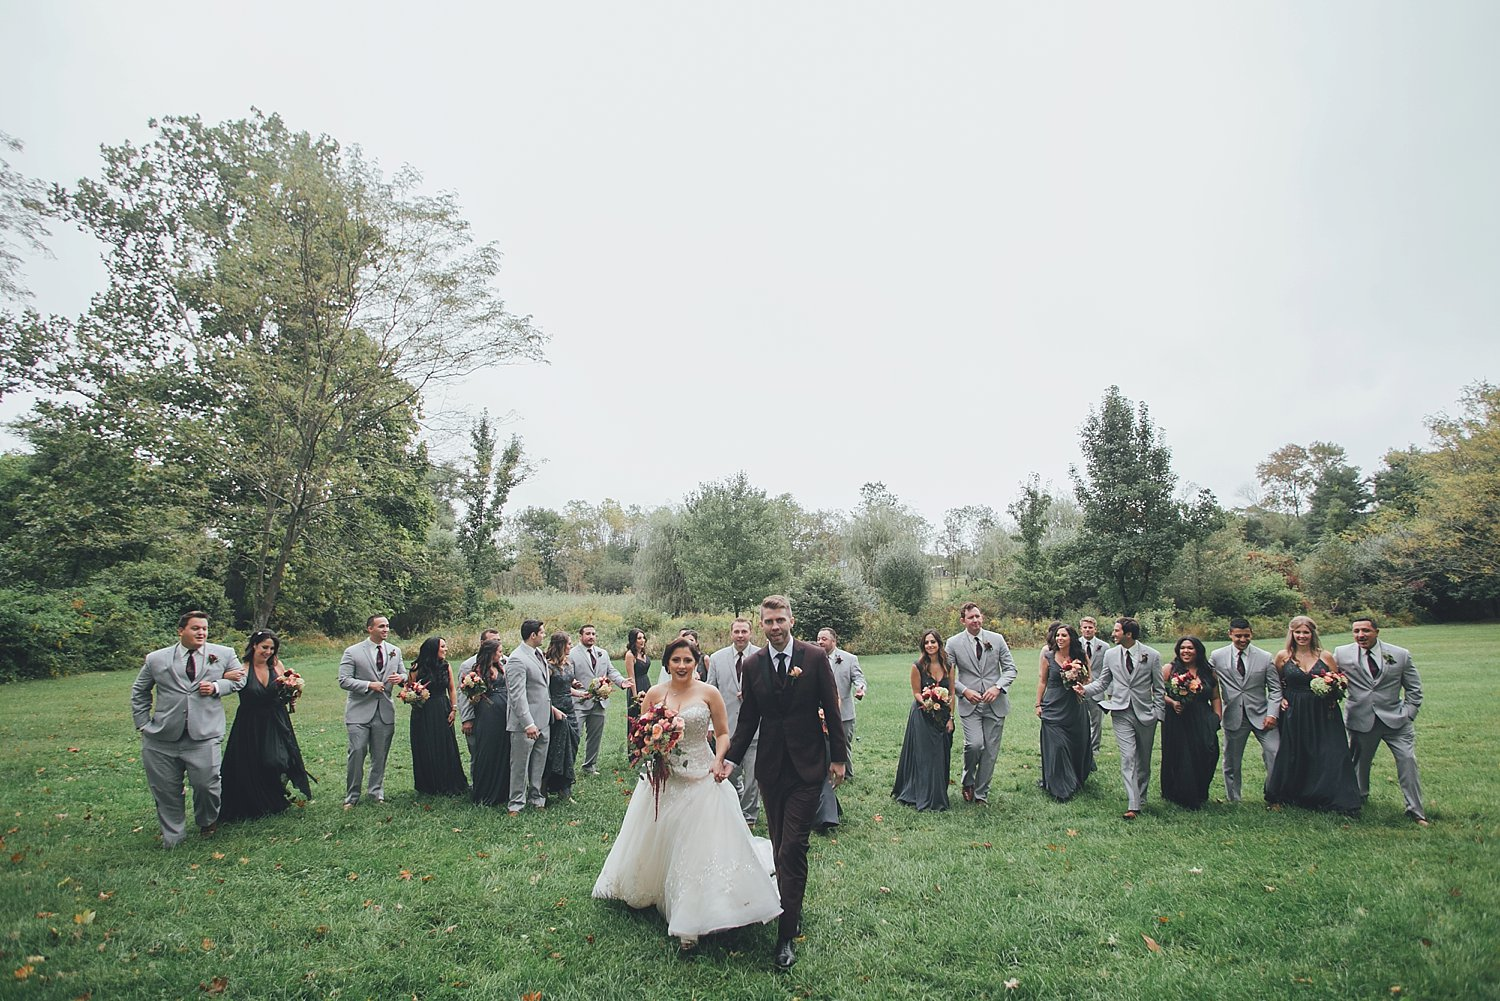 nyc-wedding-photography-nj-tri-state-cinematography-intothestory-by-moo-jae_0353.jpg